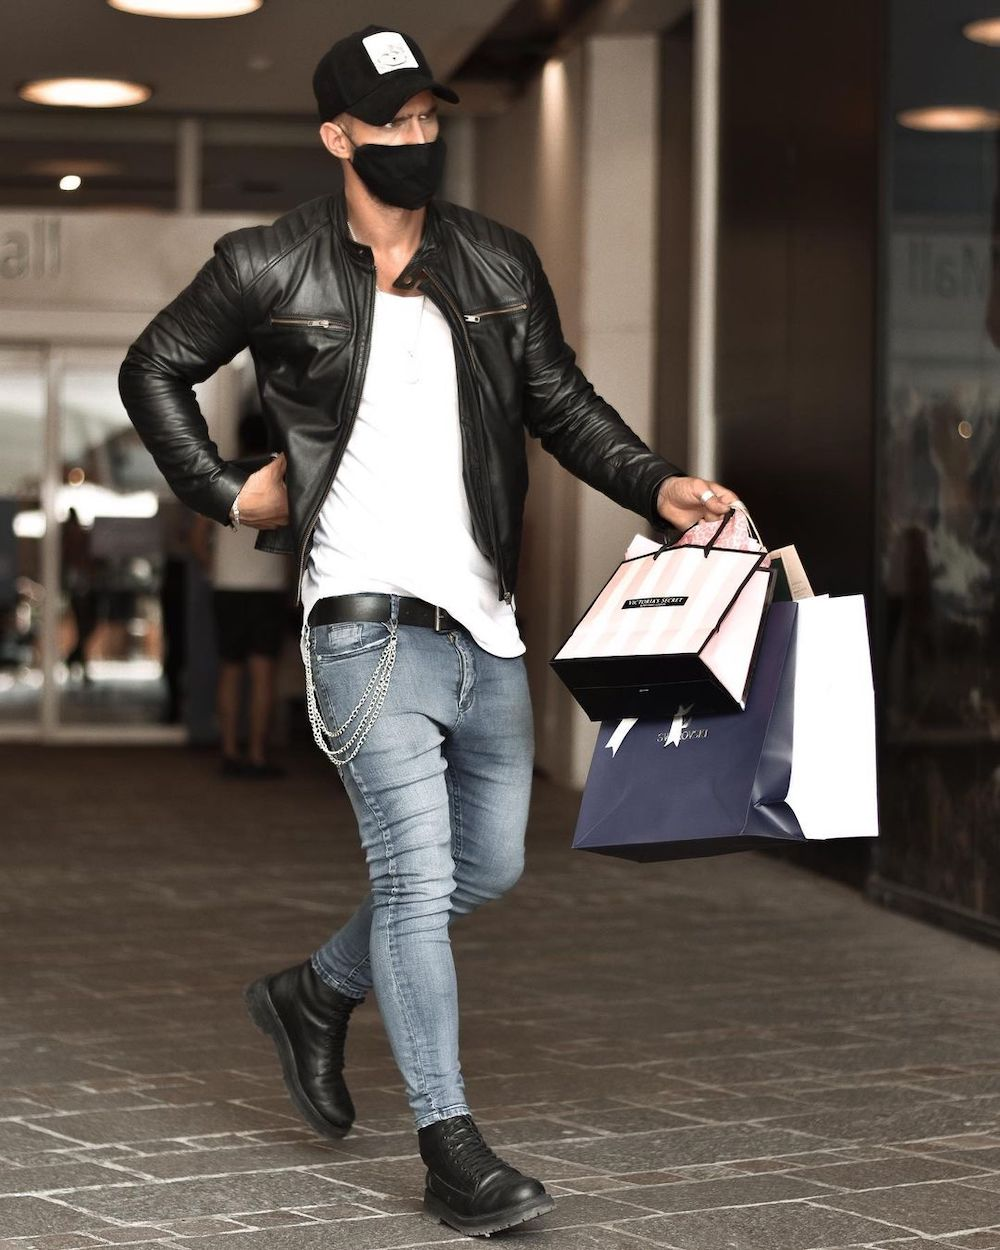 When looking great in a black leather jacket and skinny grey jeans, do not forget a face mask